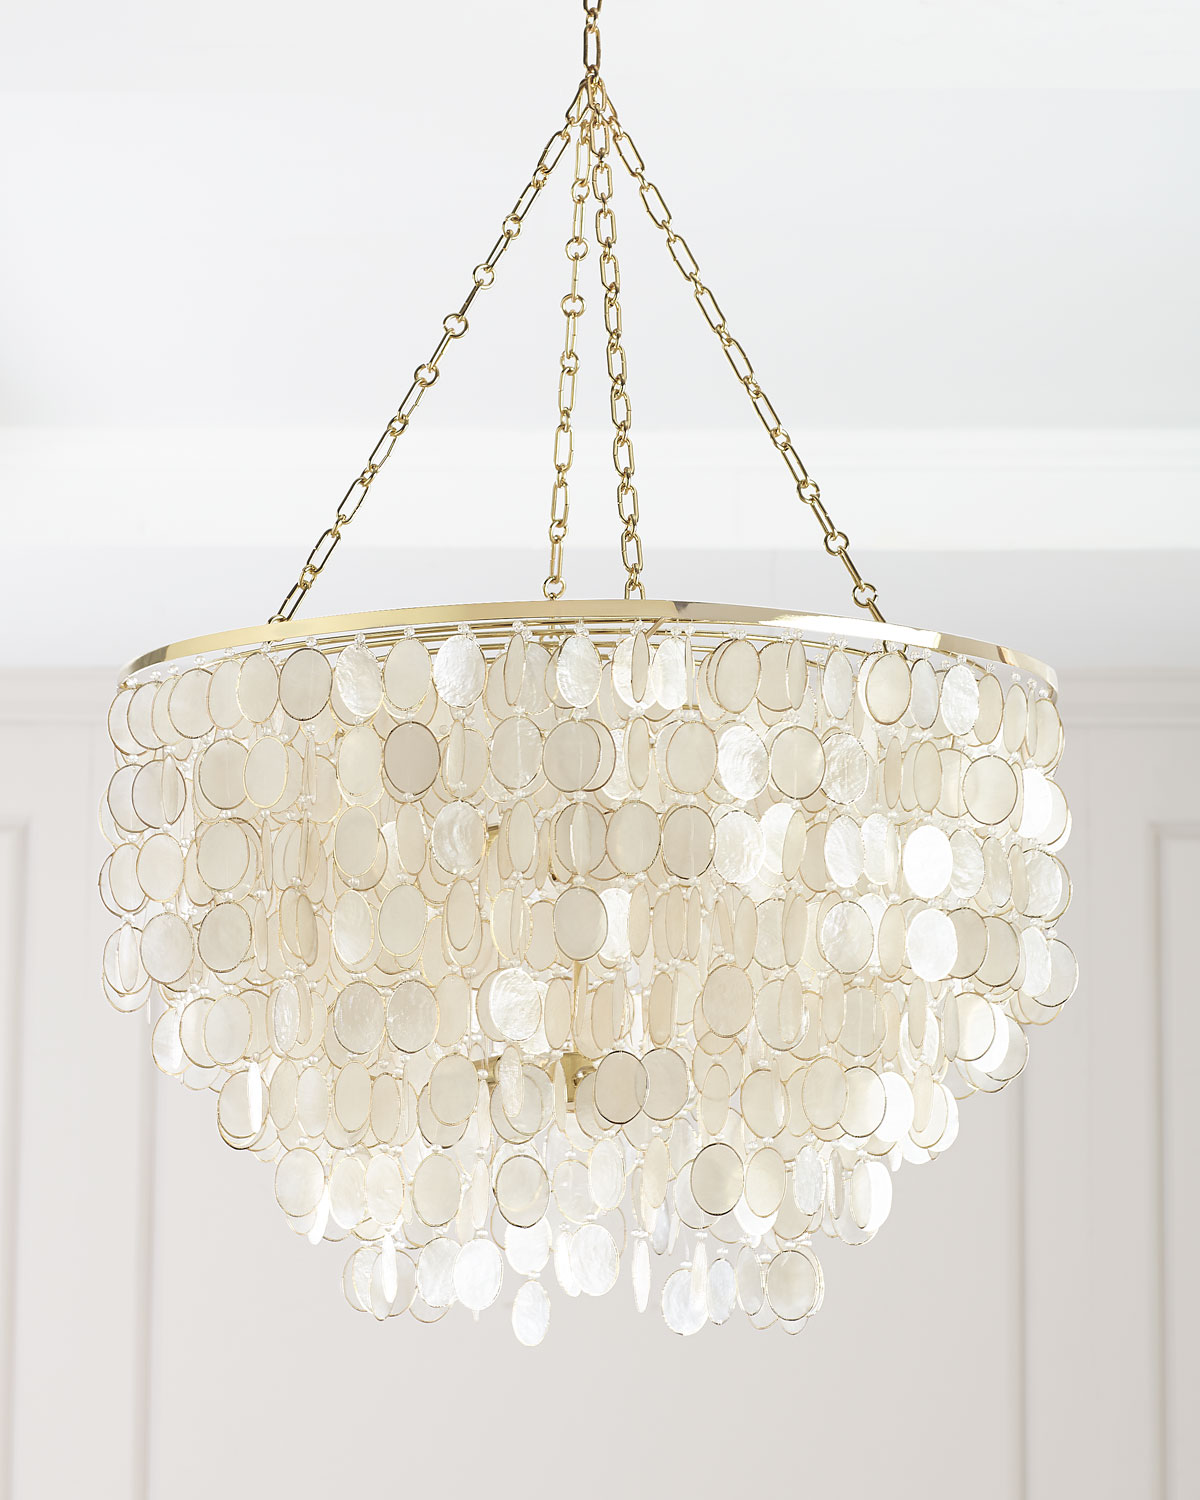 Handcrafted shell chandelier neiman marcus large aurora 6 light chandelier arubaitofo Image collections